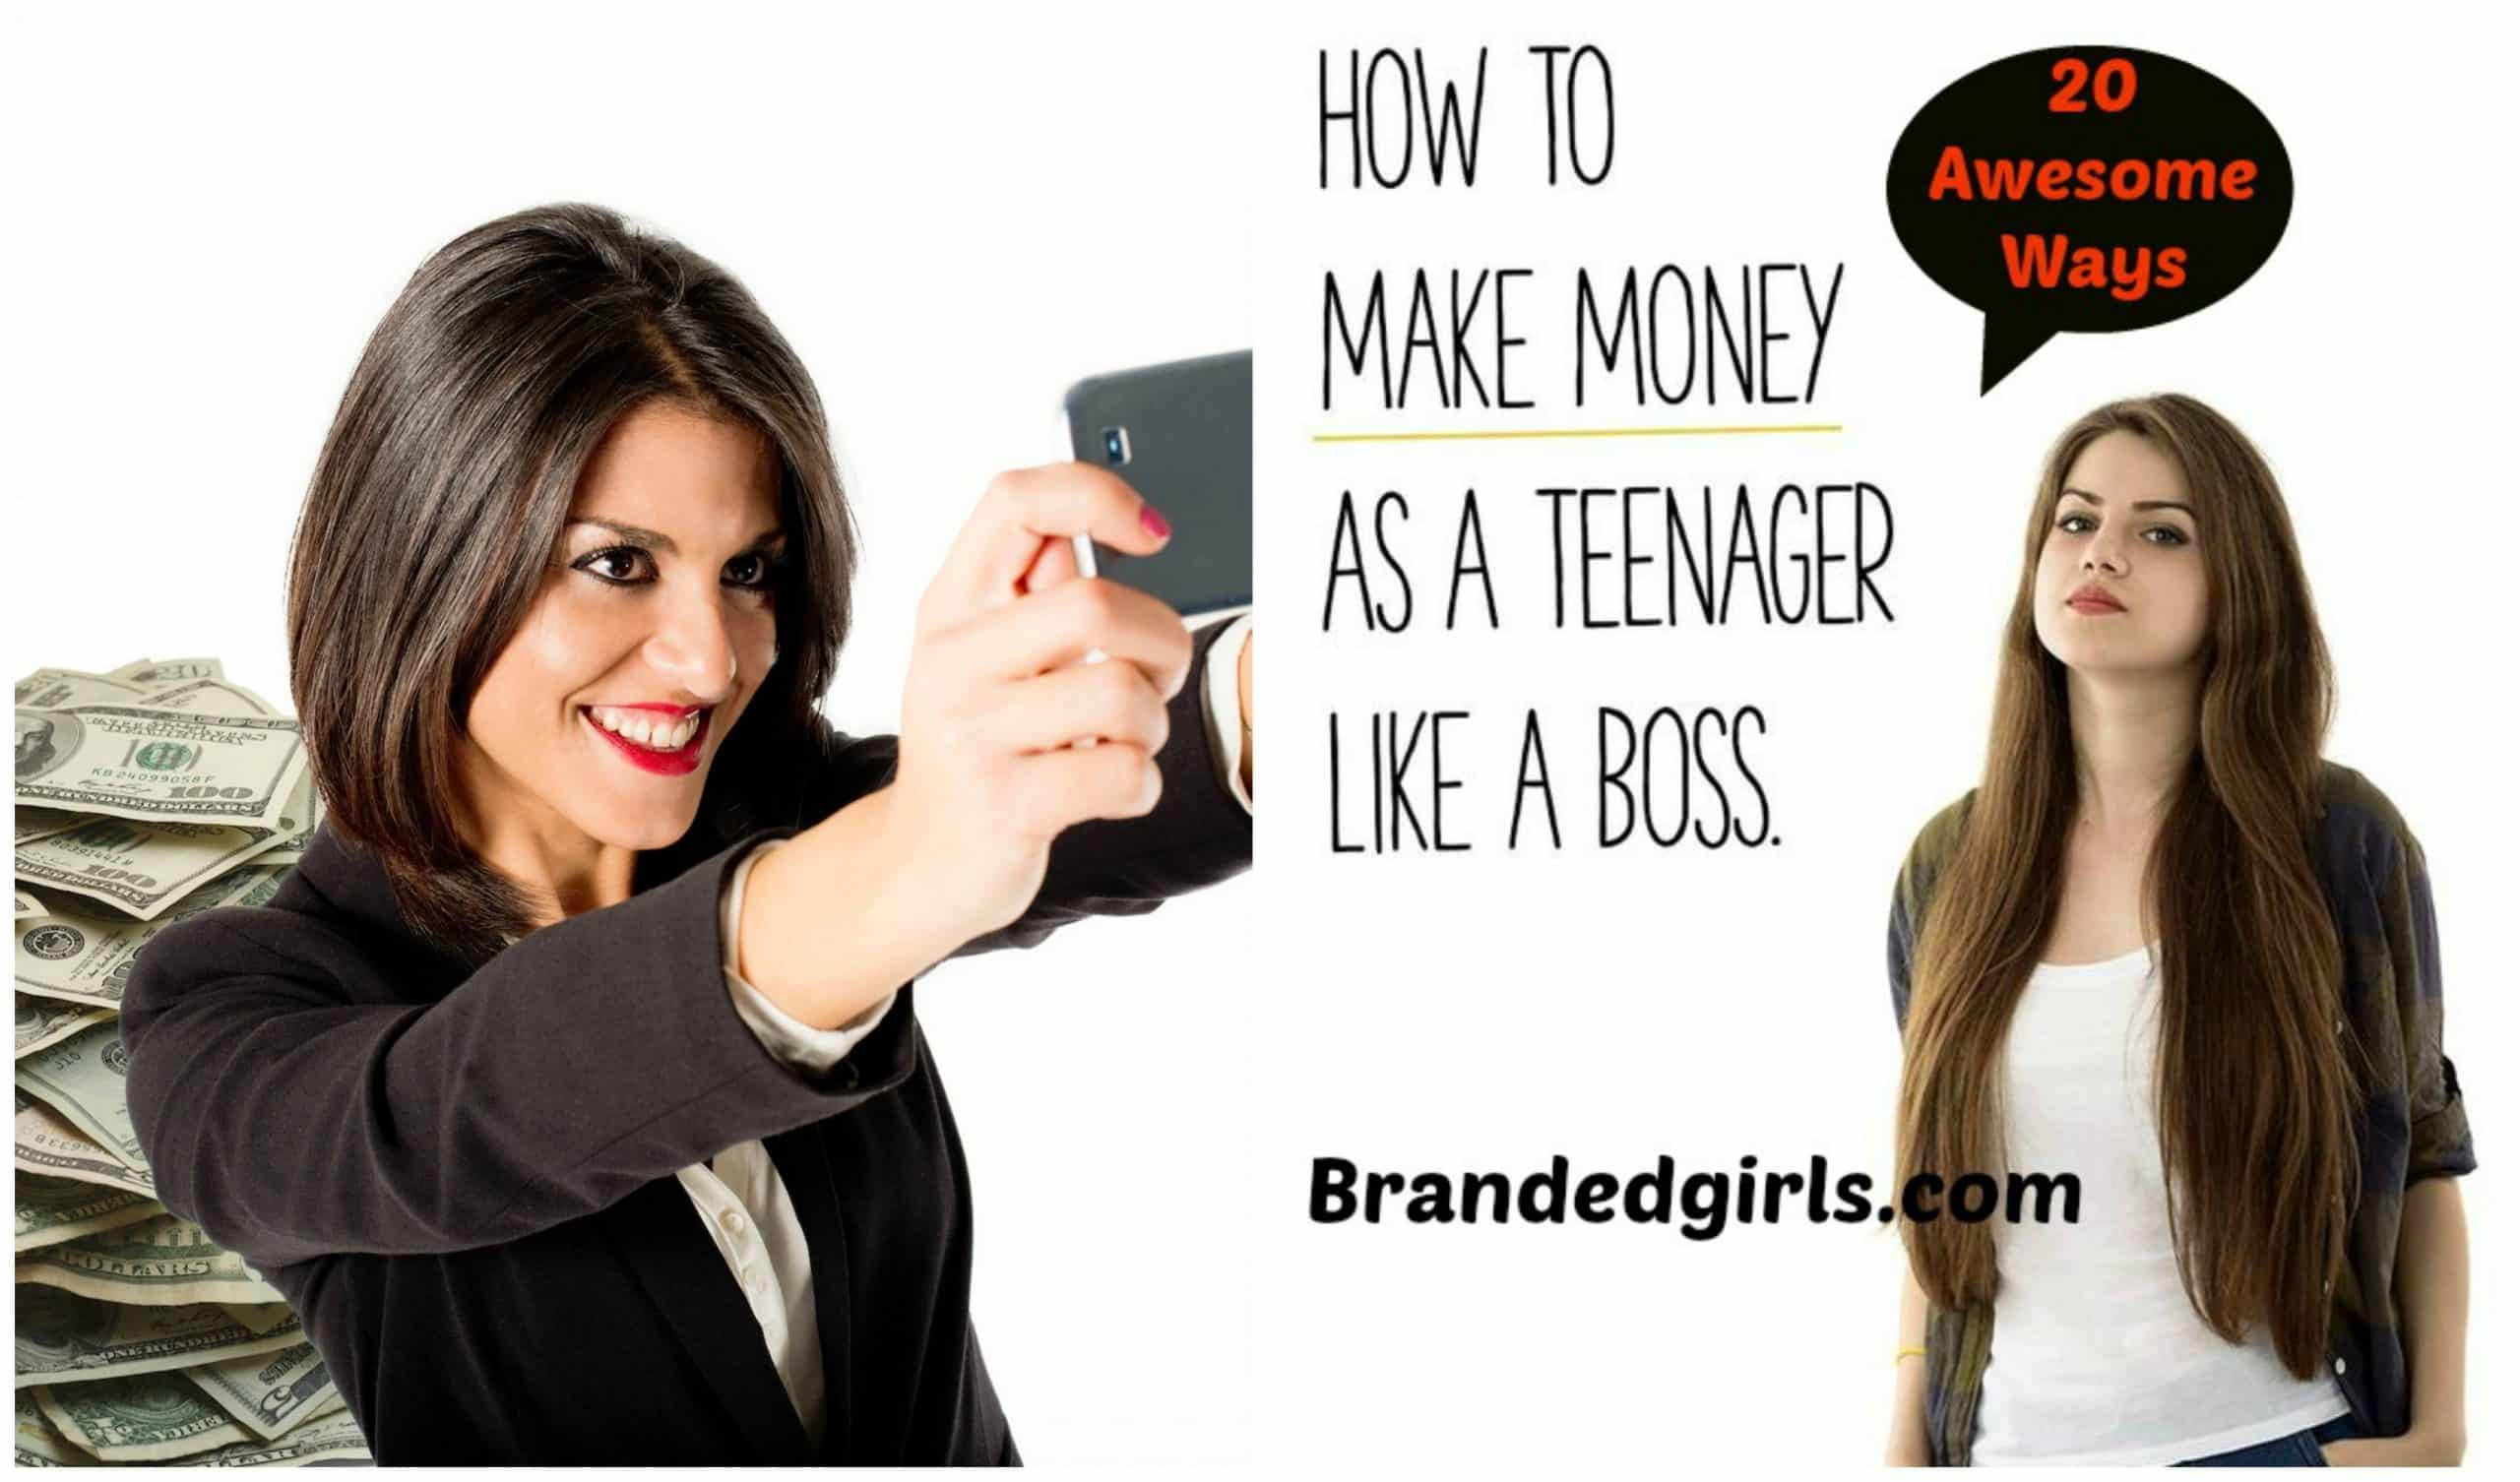 life style branded girls best jobs for teenagers 20 ways to make money for teens